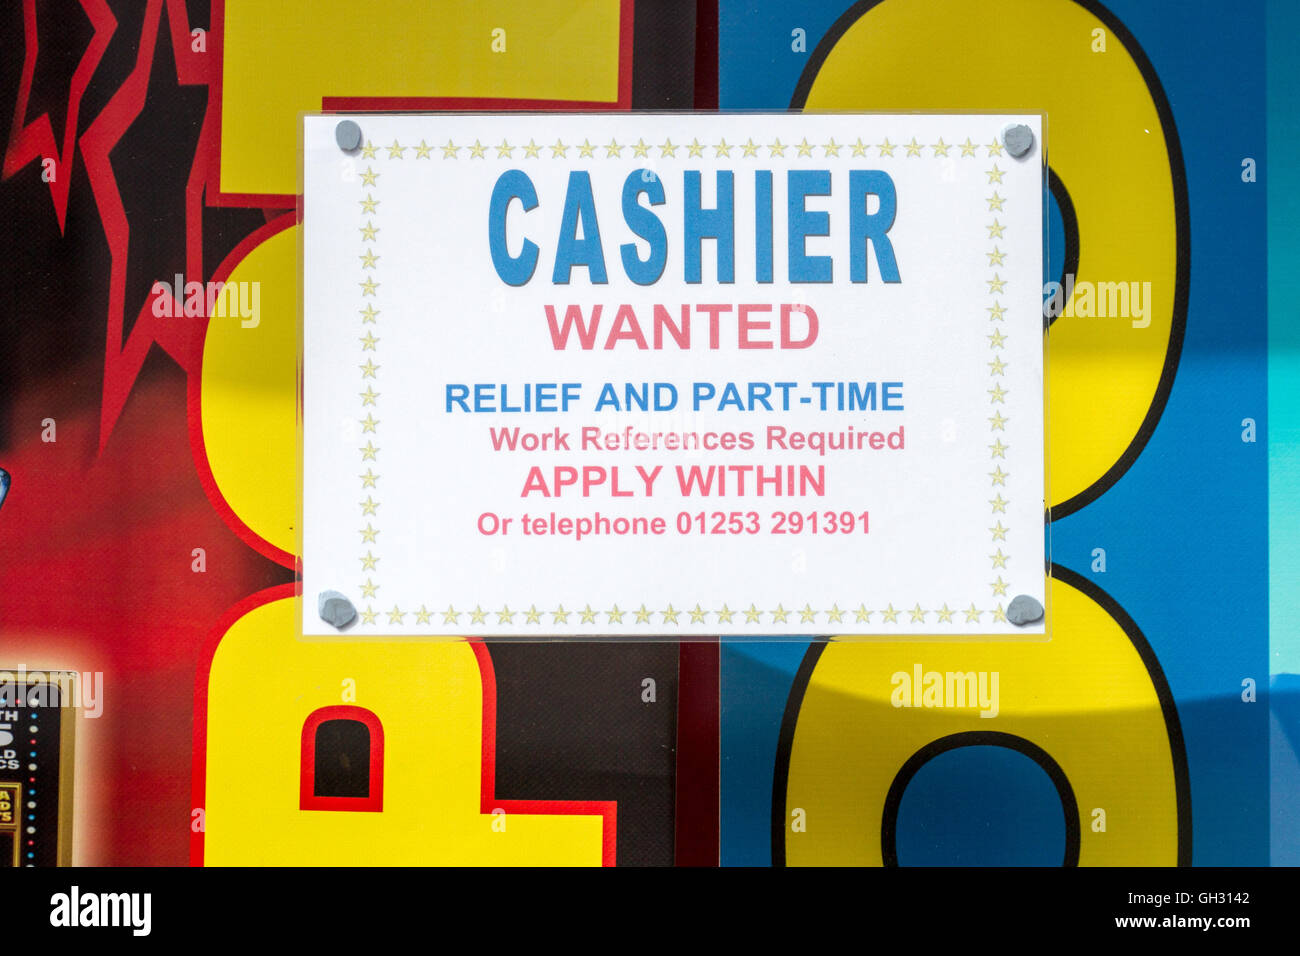 Cashier Wanted_ Relief and Part-Time, Apply Within, - Stock Image